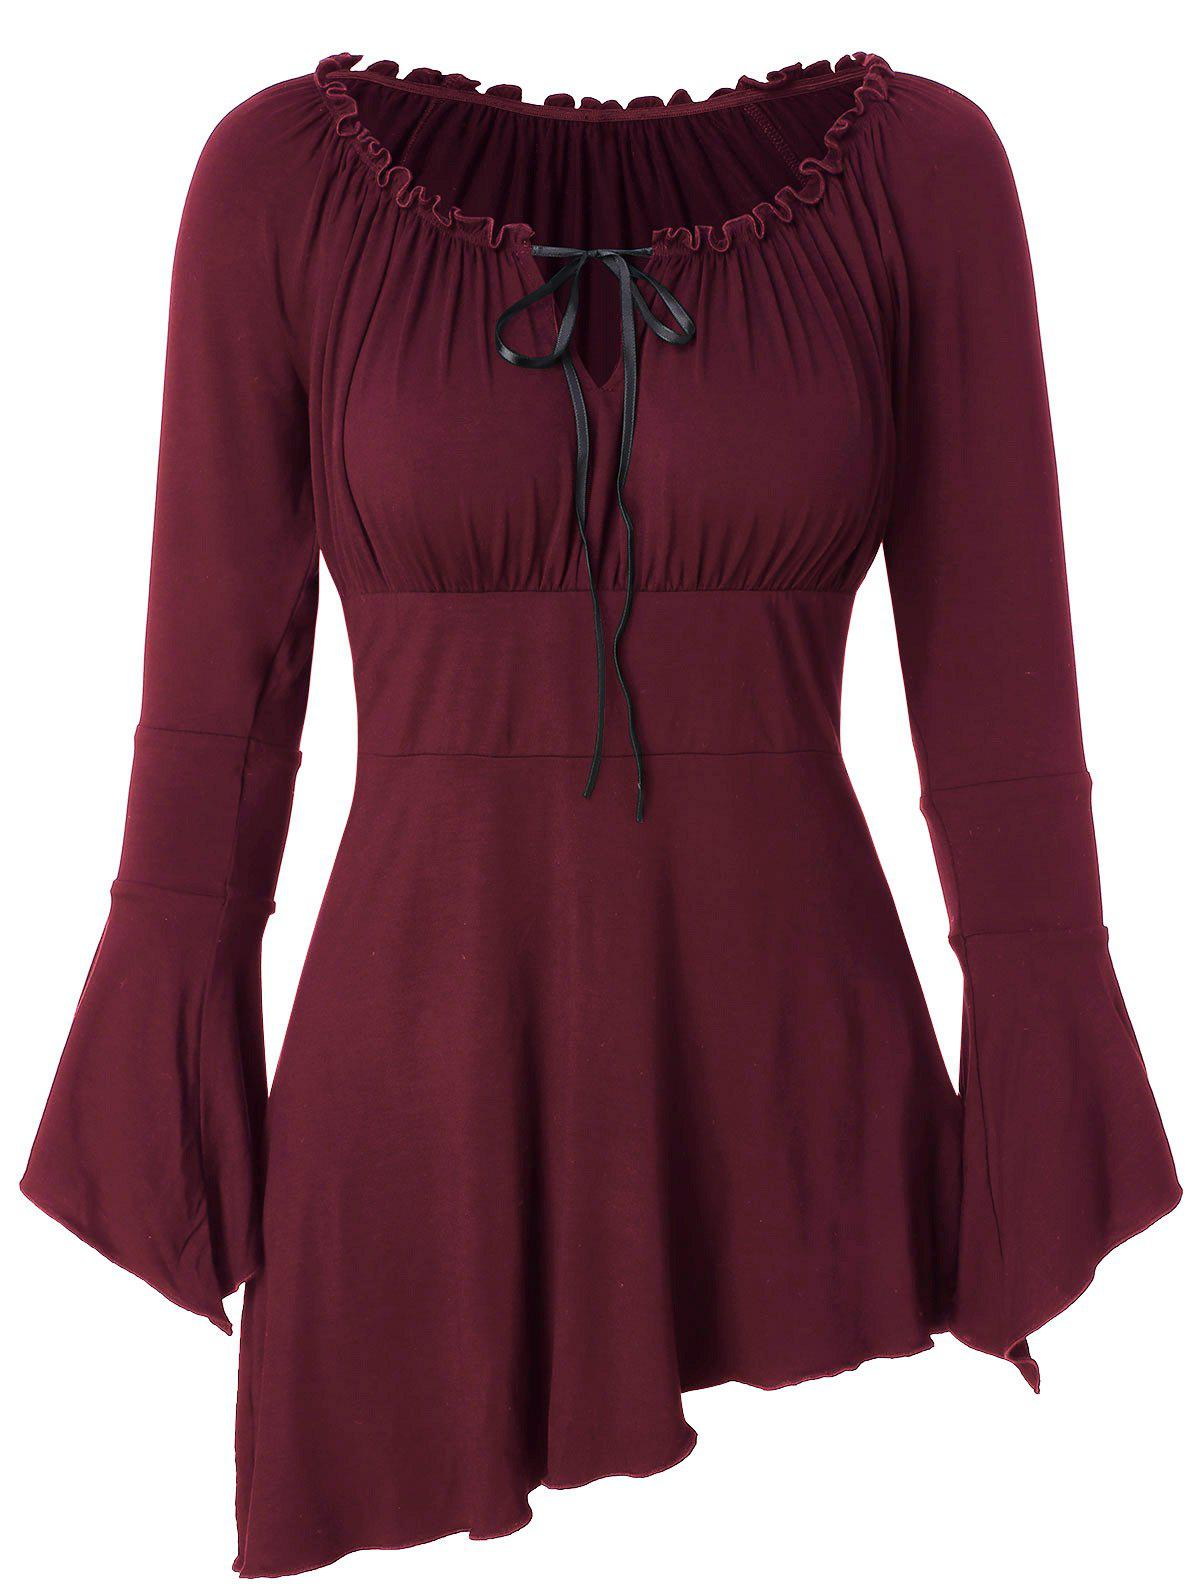 Bell Sleeve Asymmetric T Shirt - RED WINE XL